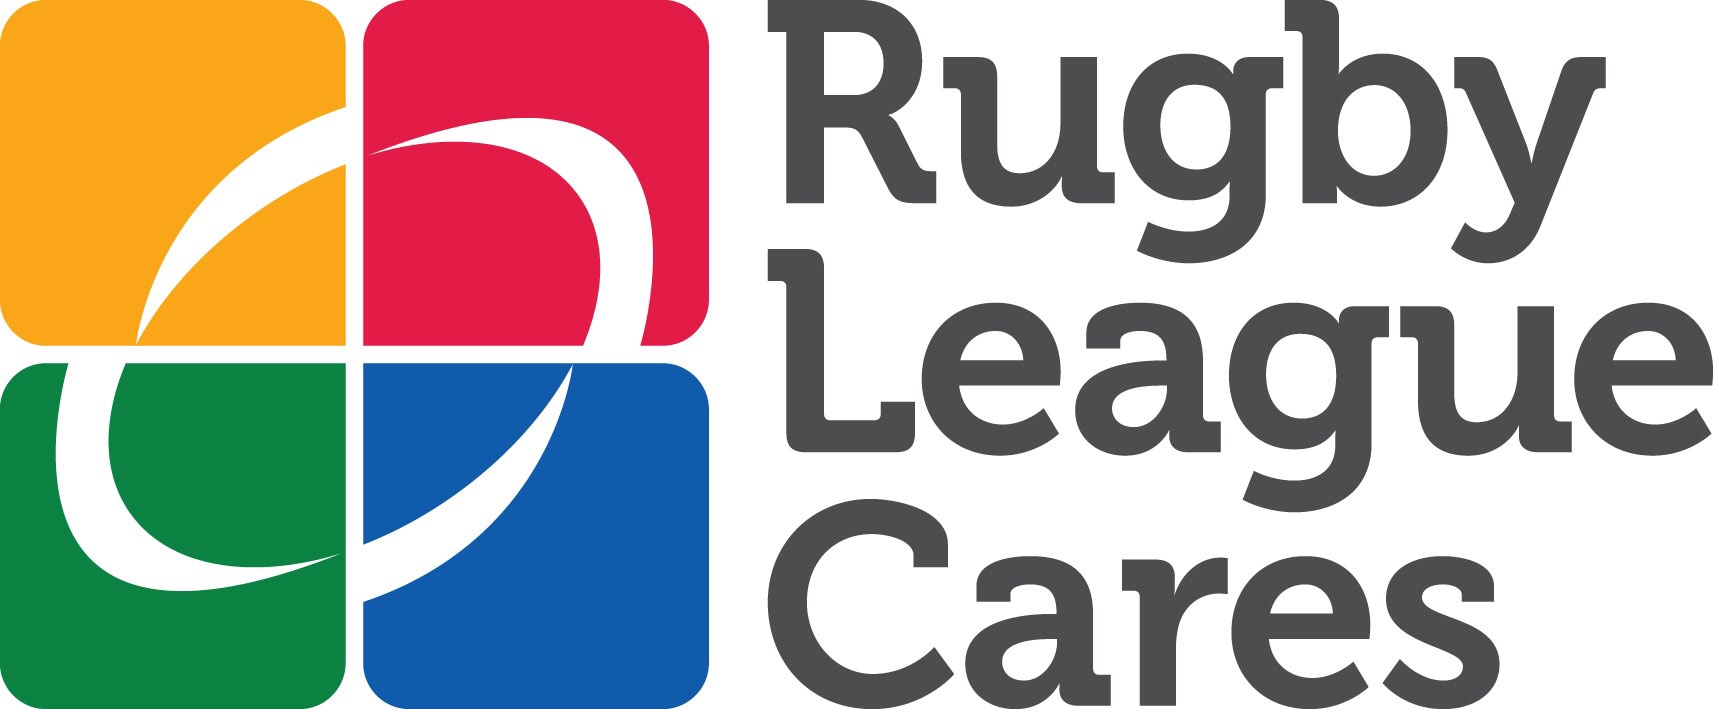 Rugby League Cares Charity